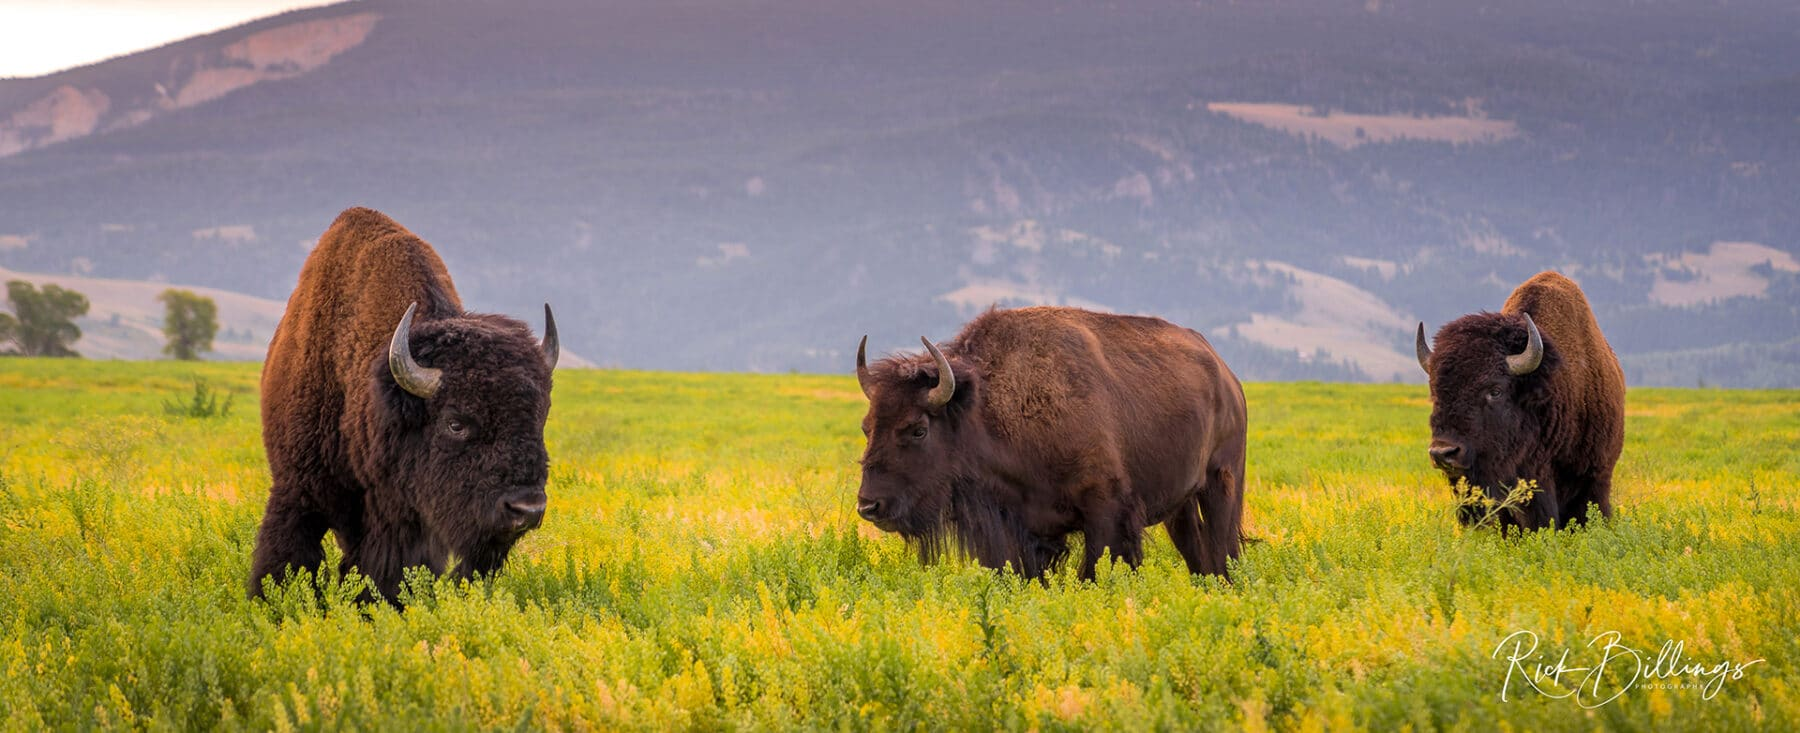 No 1070 PANO 20190823 Bison 3